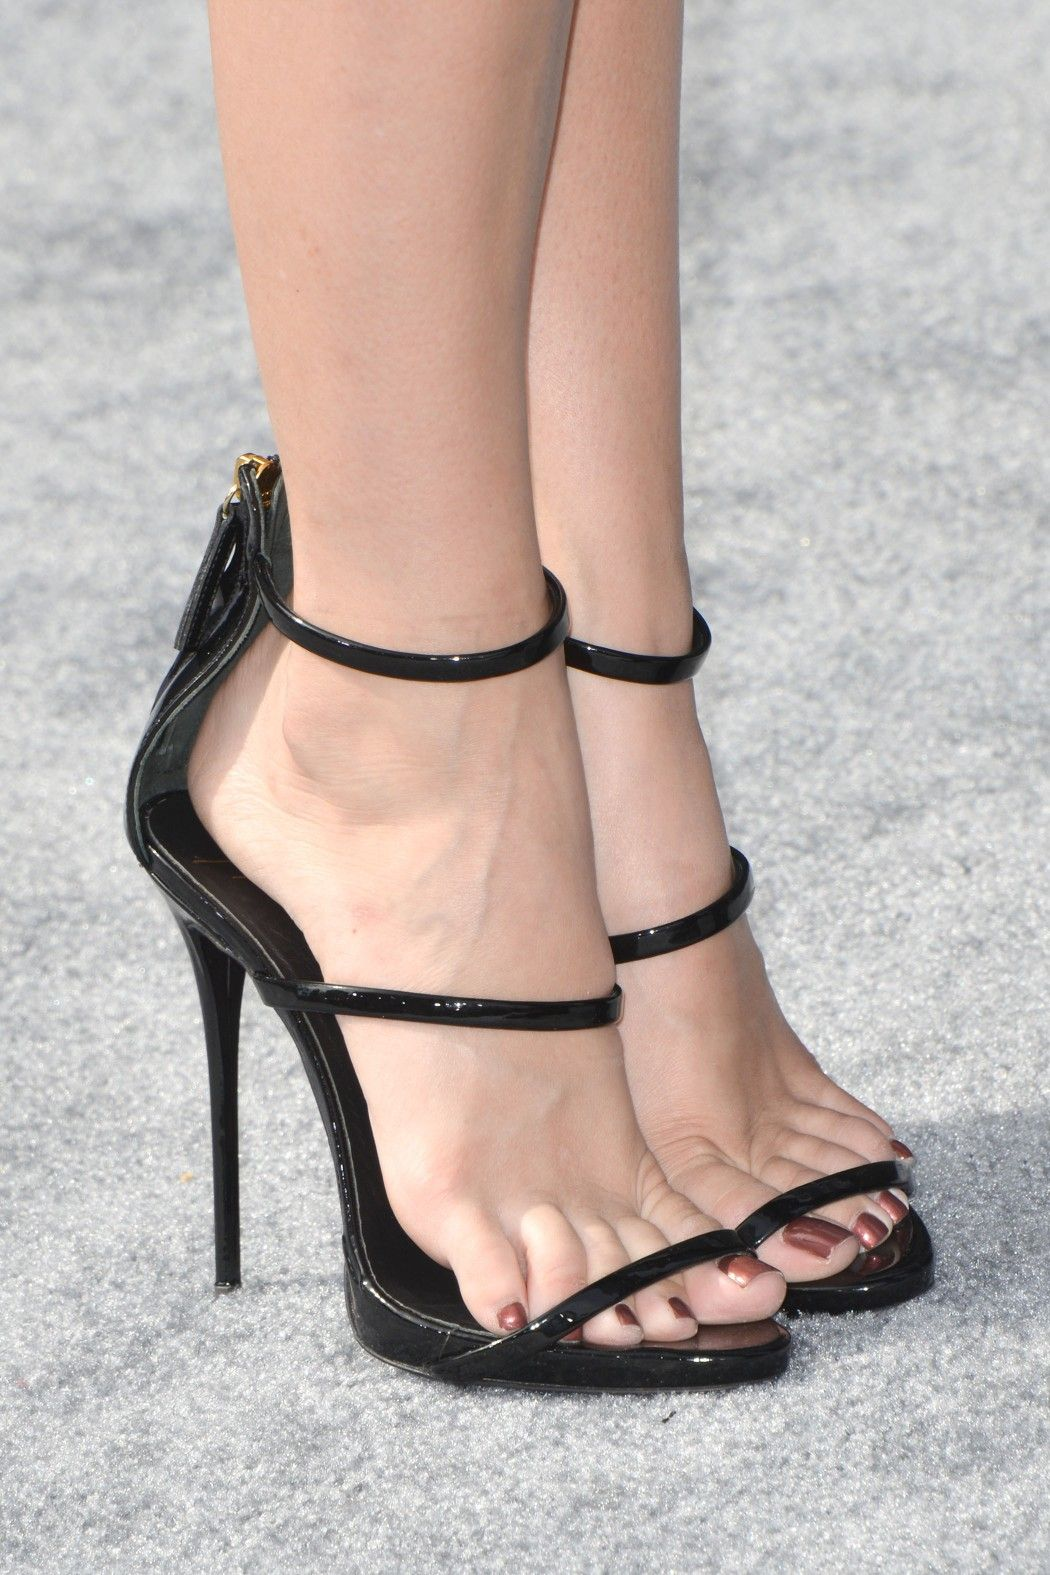 Think, you Rate sexy feet and legs not clear